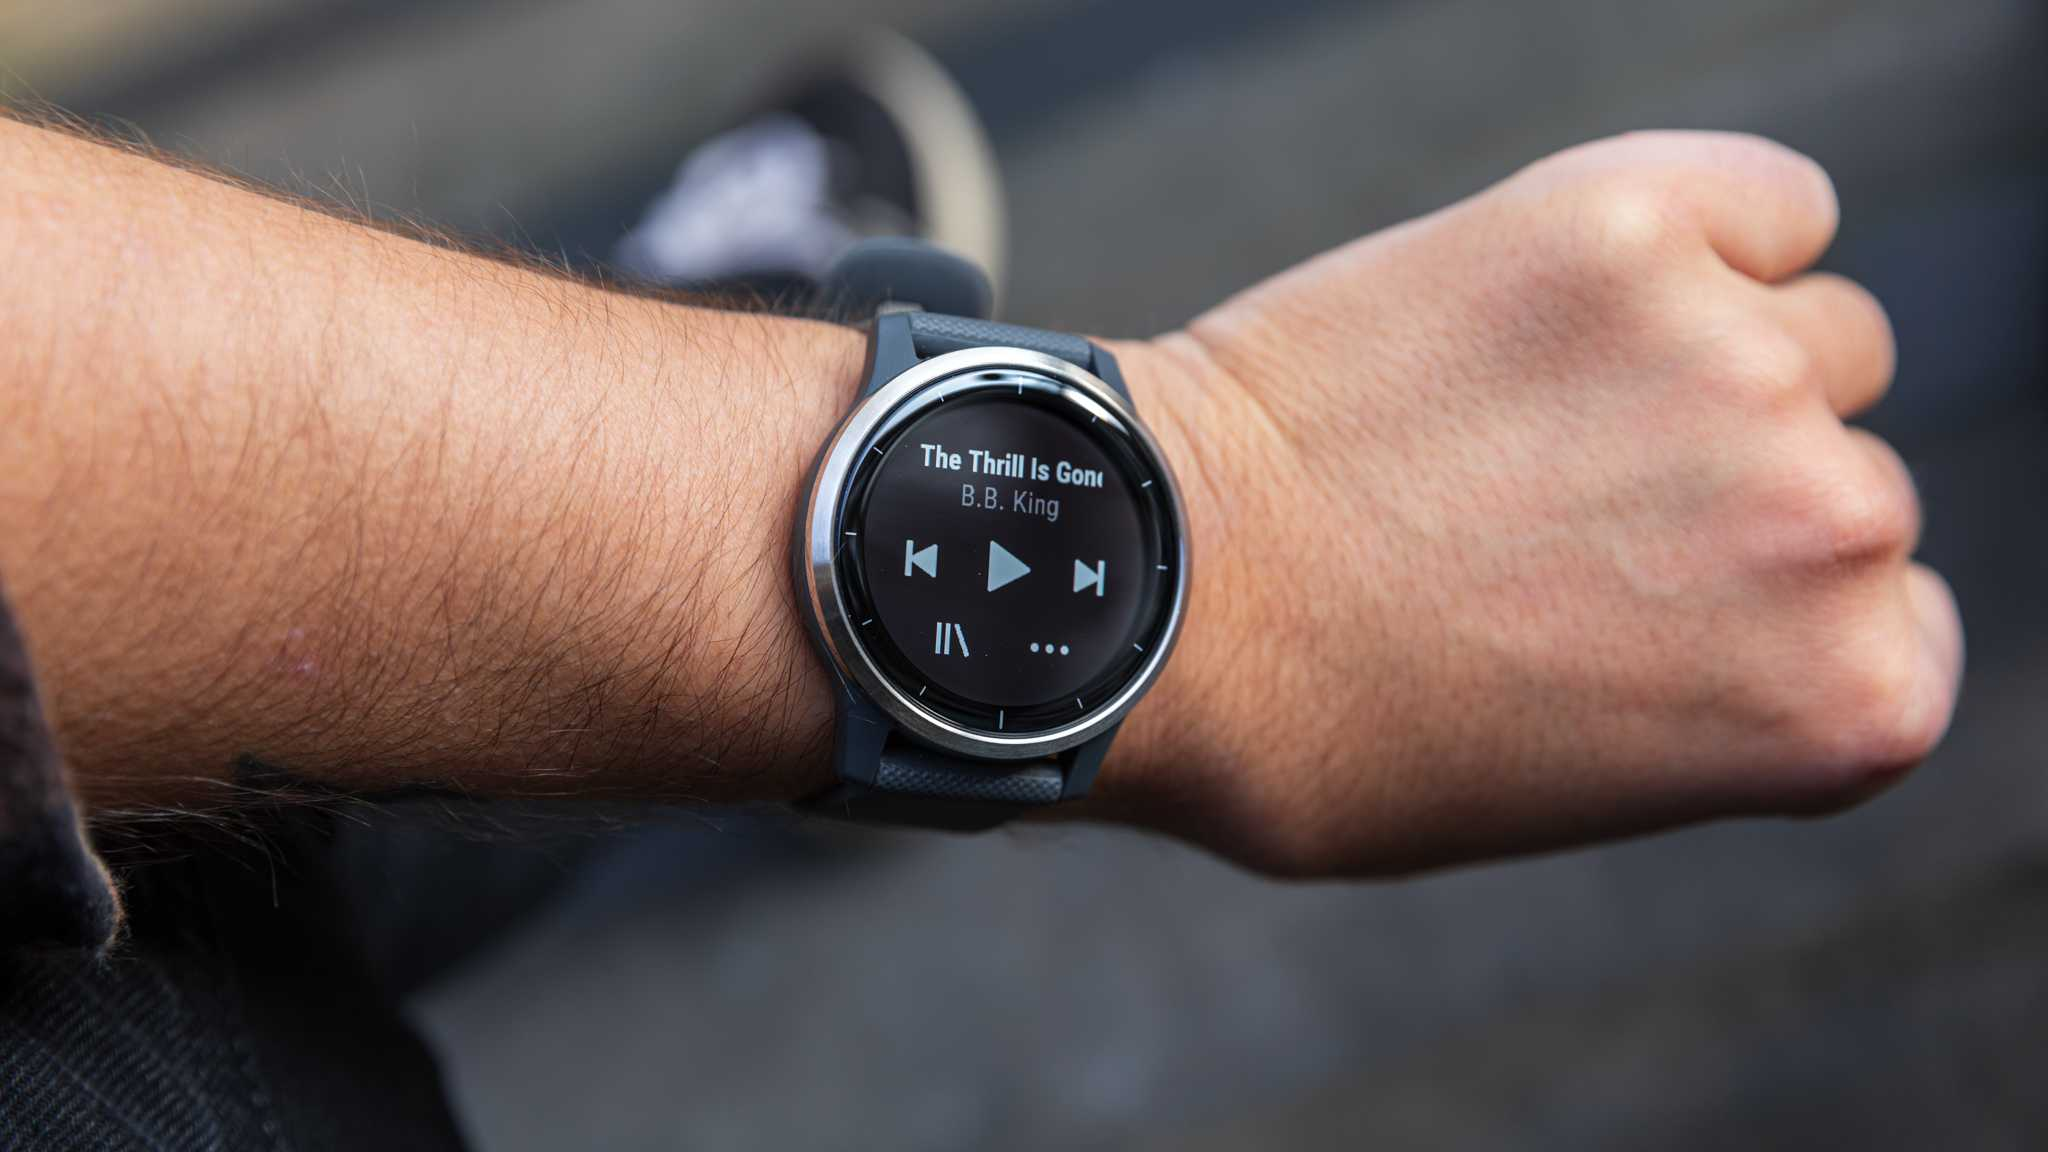 Garmin Vivoactive 4S Smartwatch Review: Perfect Activity Tracking Tool